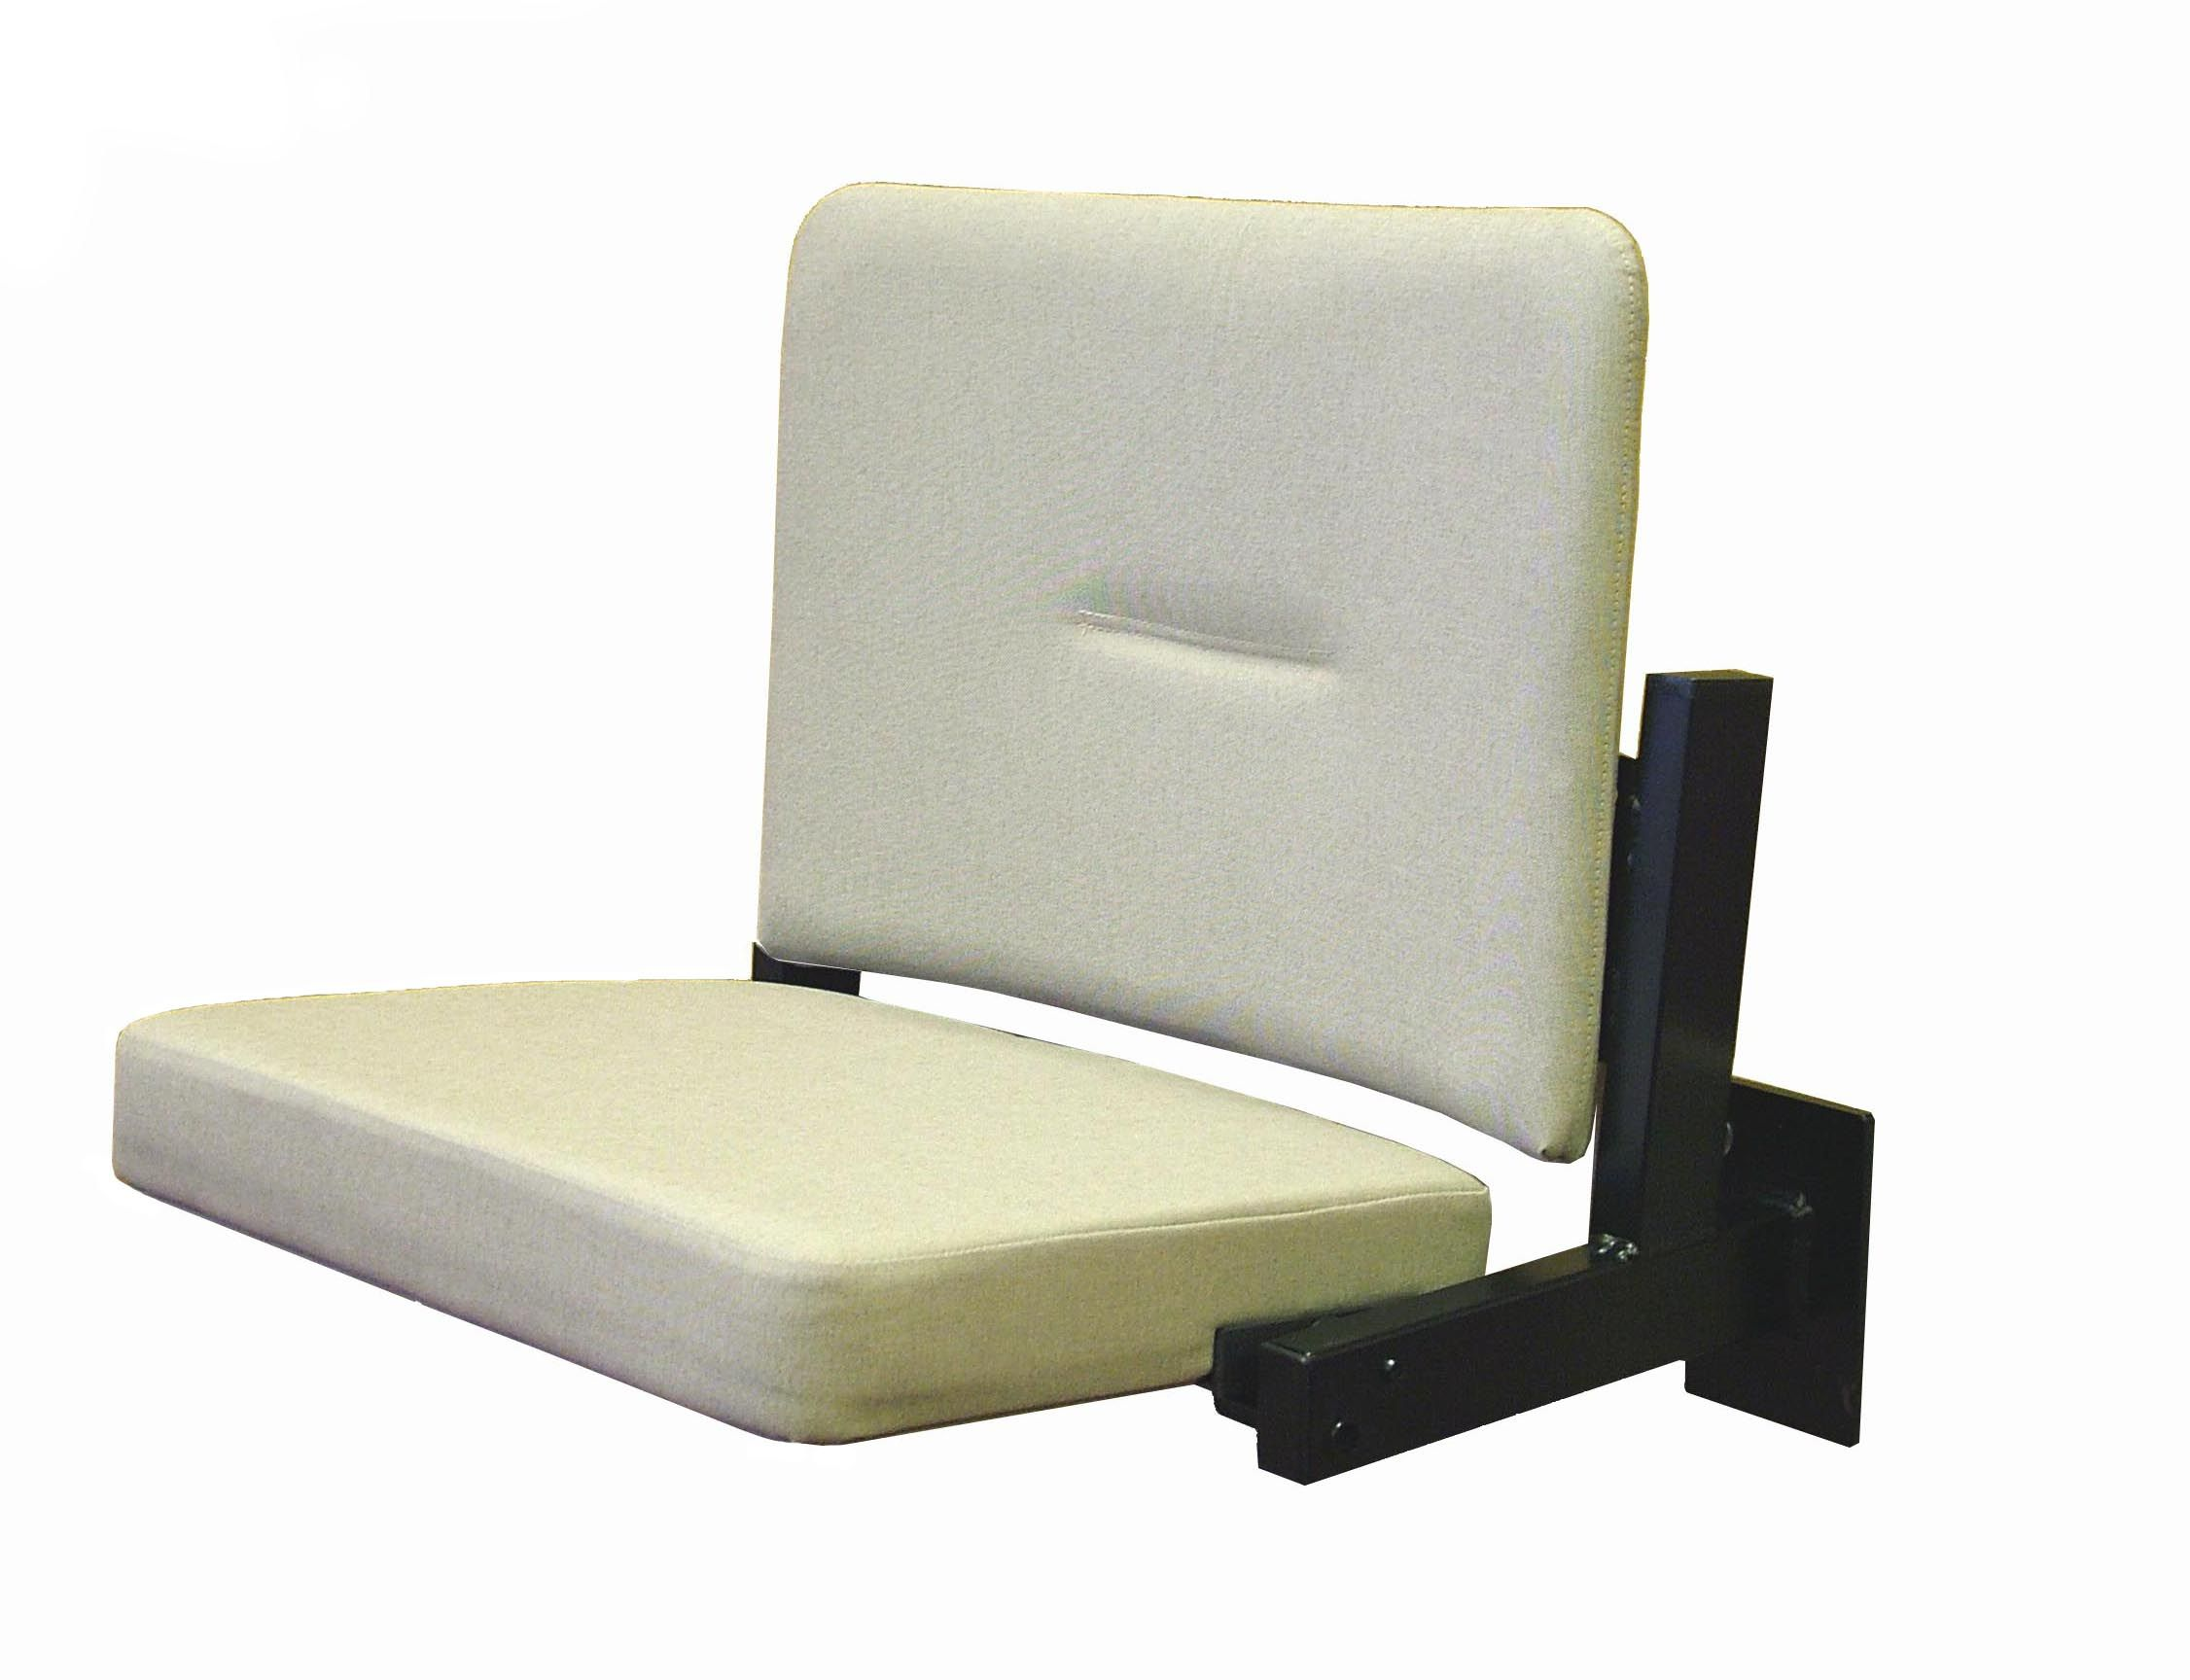 Evertaut\'s Solarushback DDA wall mounted flip-up seat. Ideal for ...